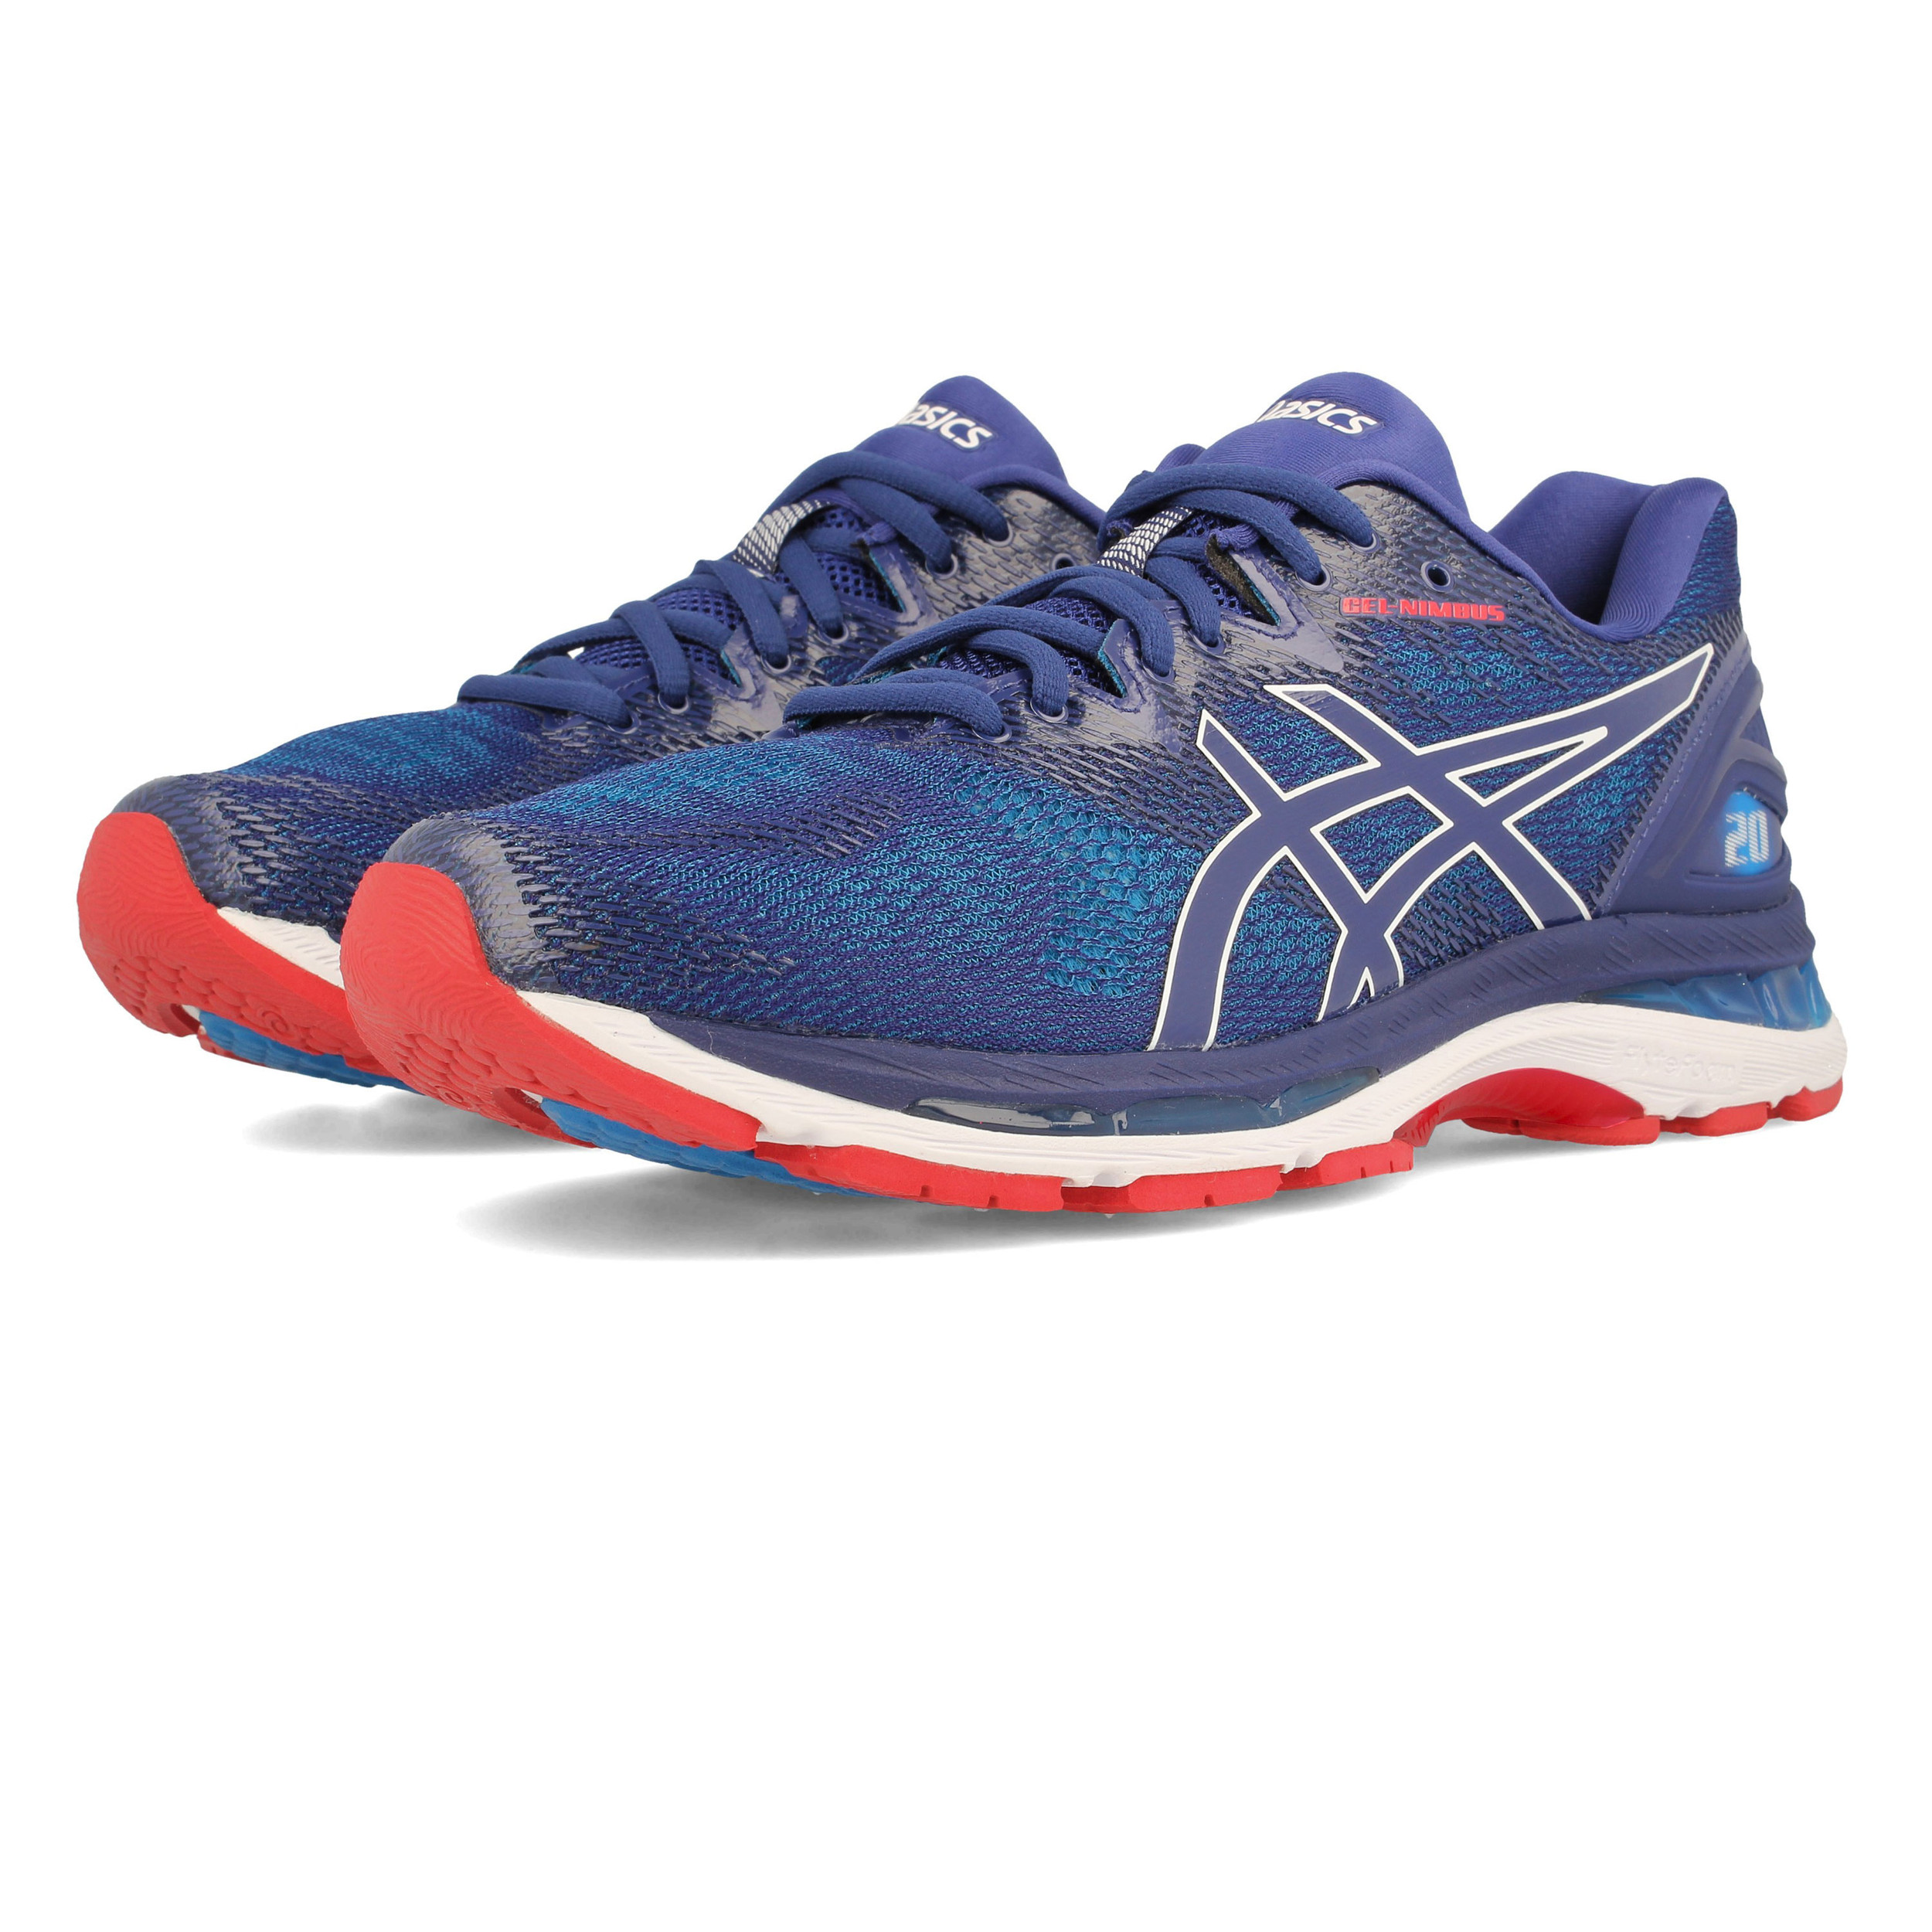 Everything has been thought of to provide you with the most reliable,  comfortable running shoe. The ASICS Gel Nimbus 20, giving you absolutely no  excuse not ... 3051256dc3a6